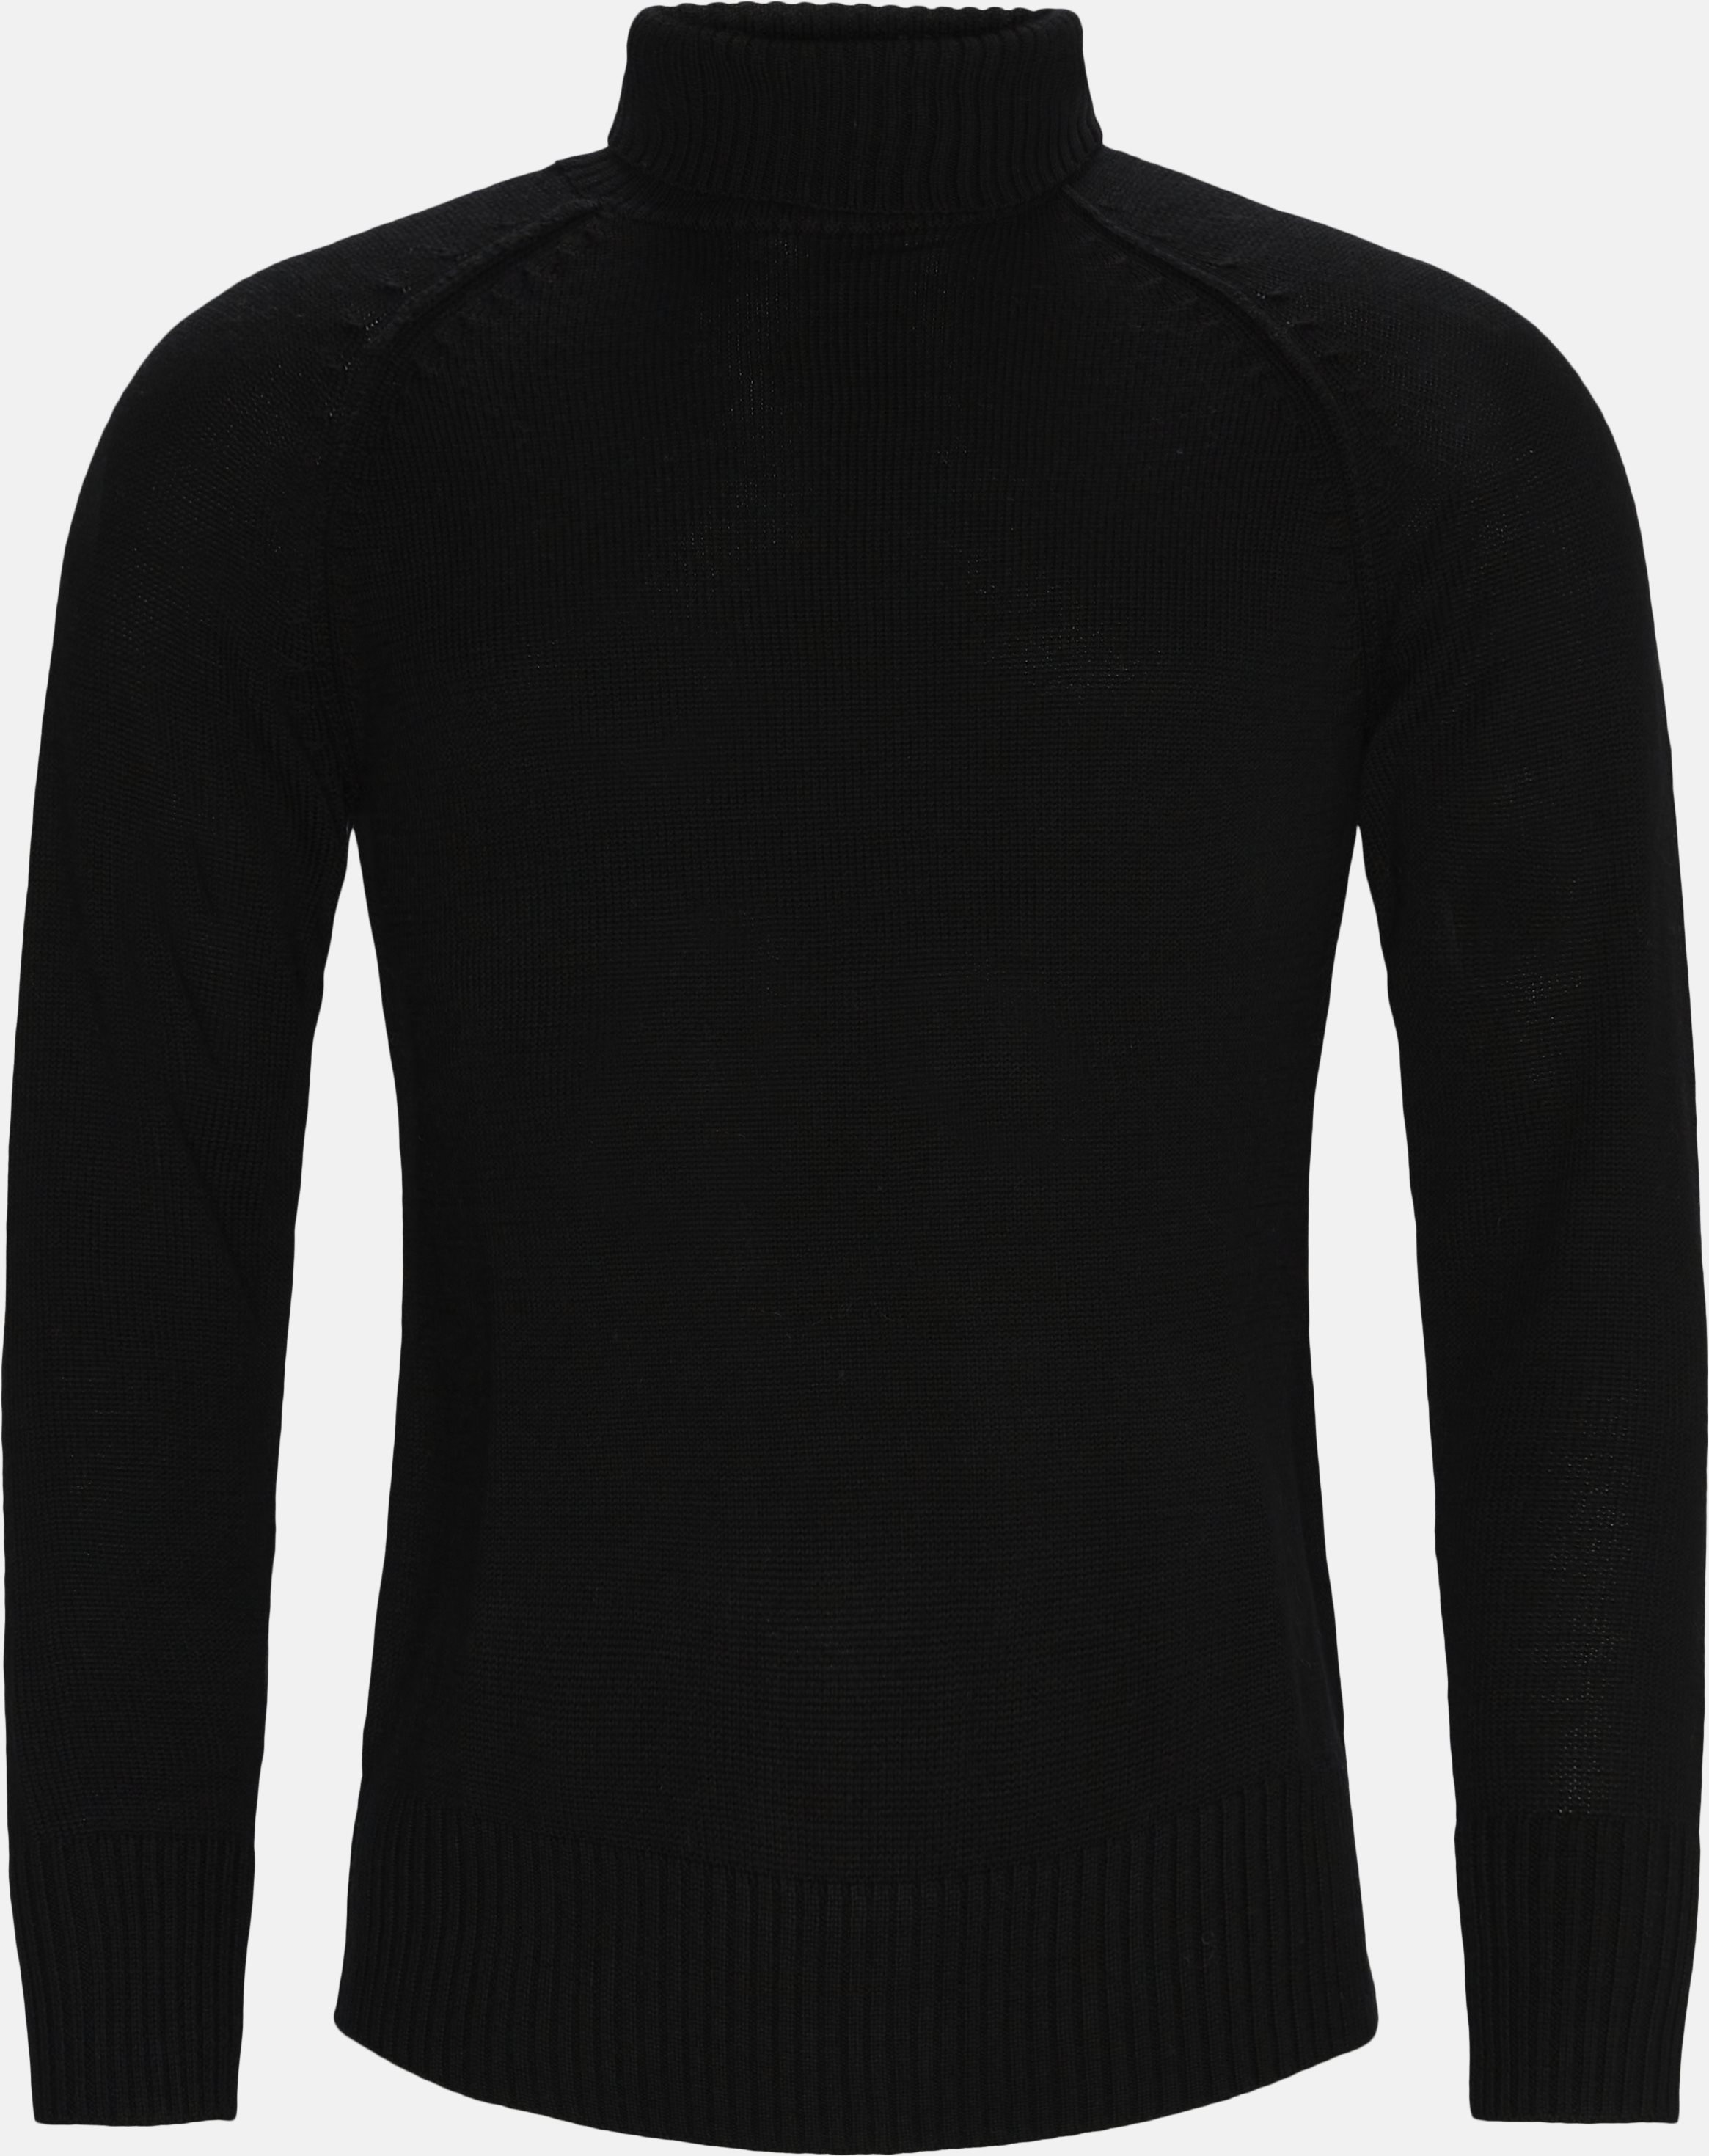 Erik Rollneck - Strik - Regular - Sort